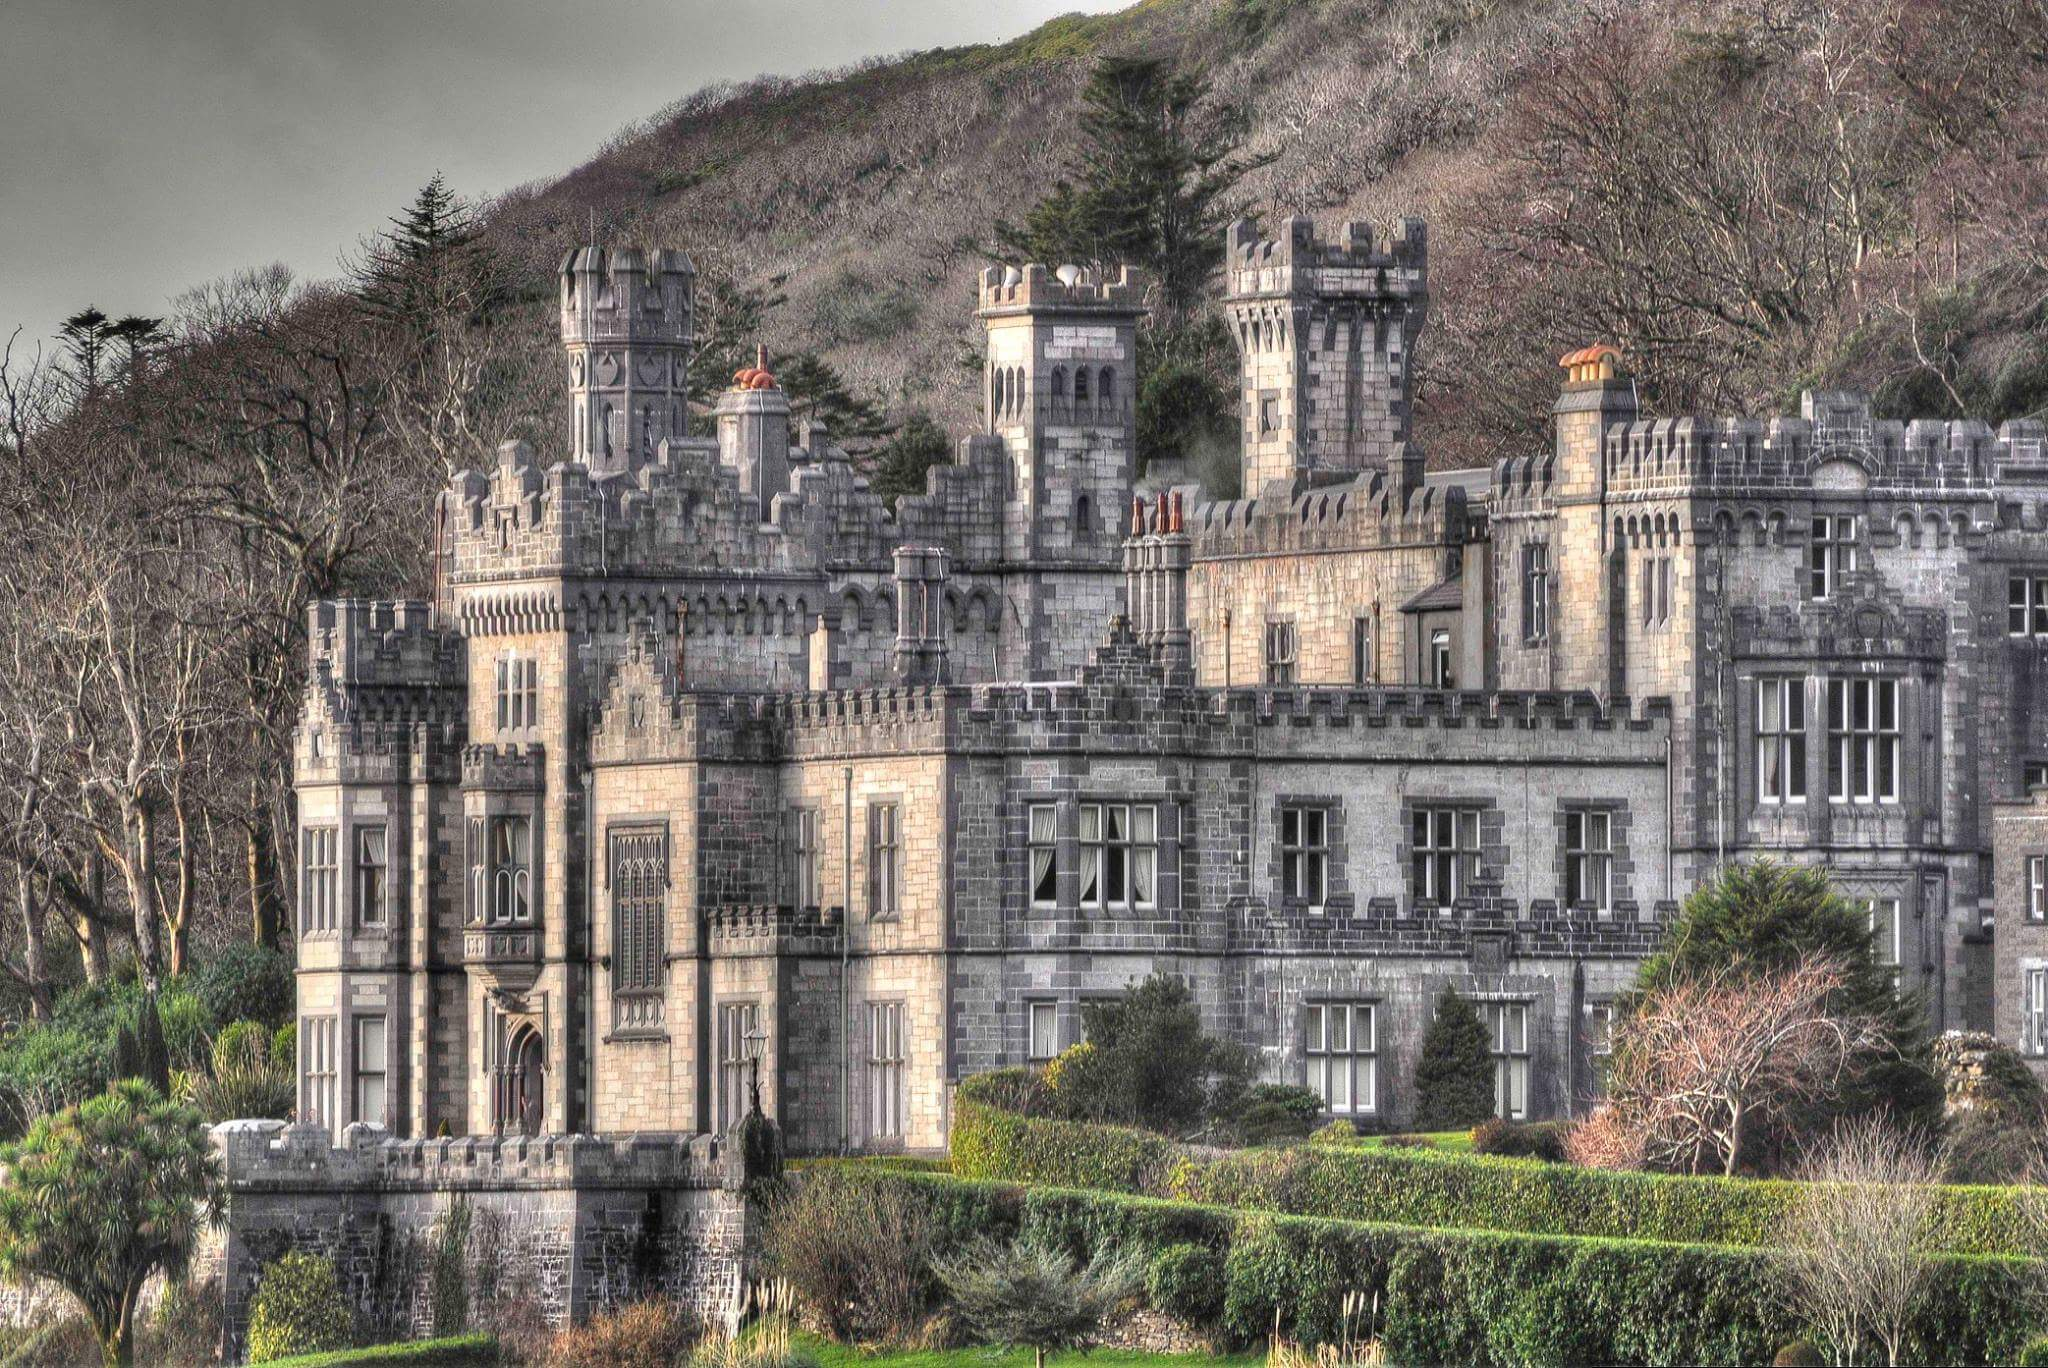 Image of Kylemore Abbey, Connemara, County Galway.